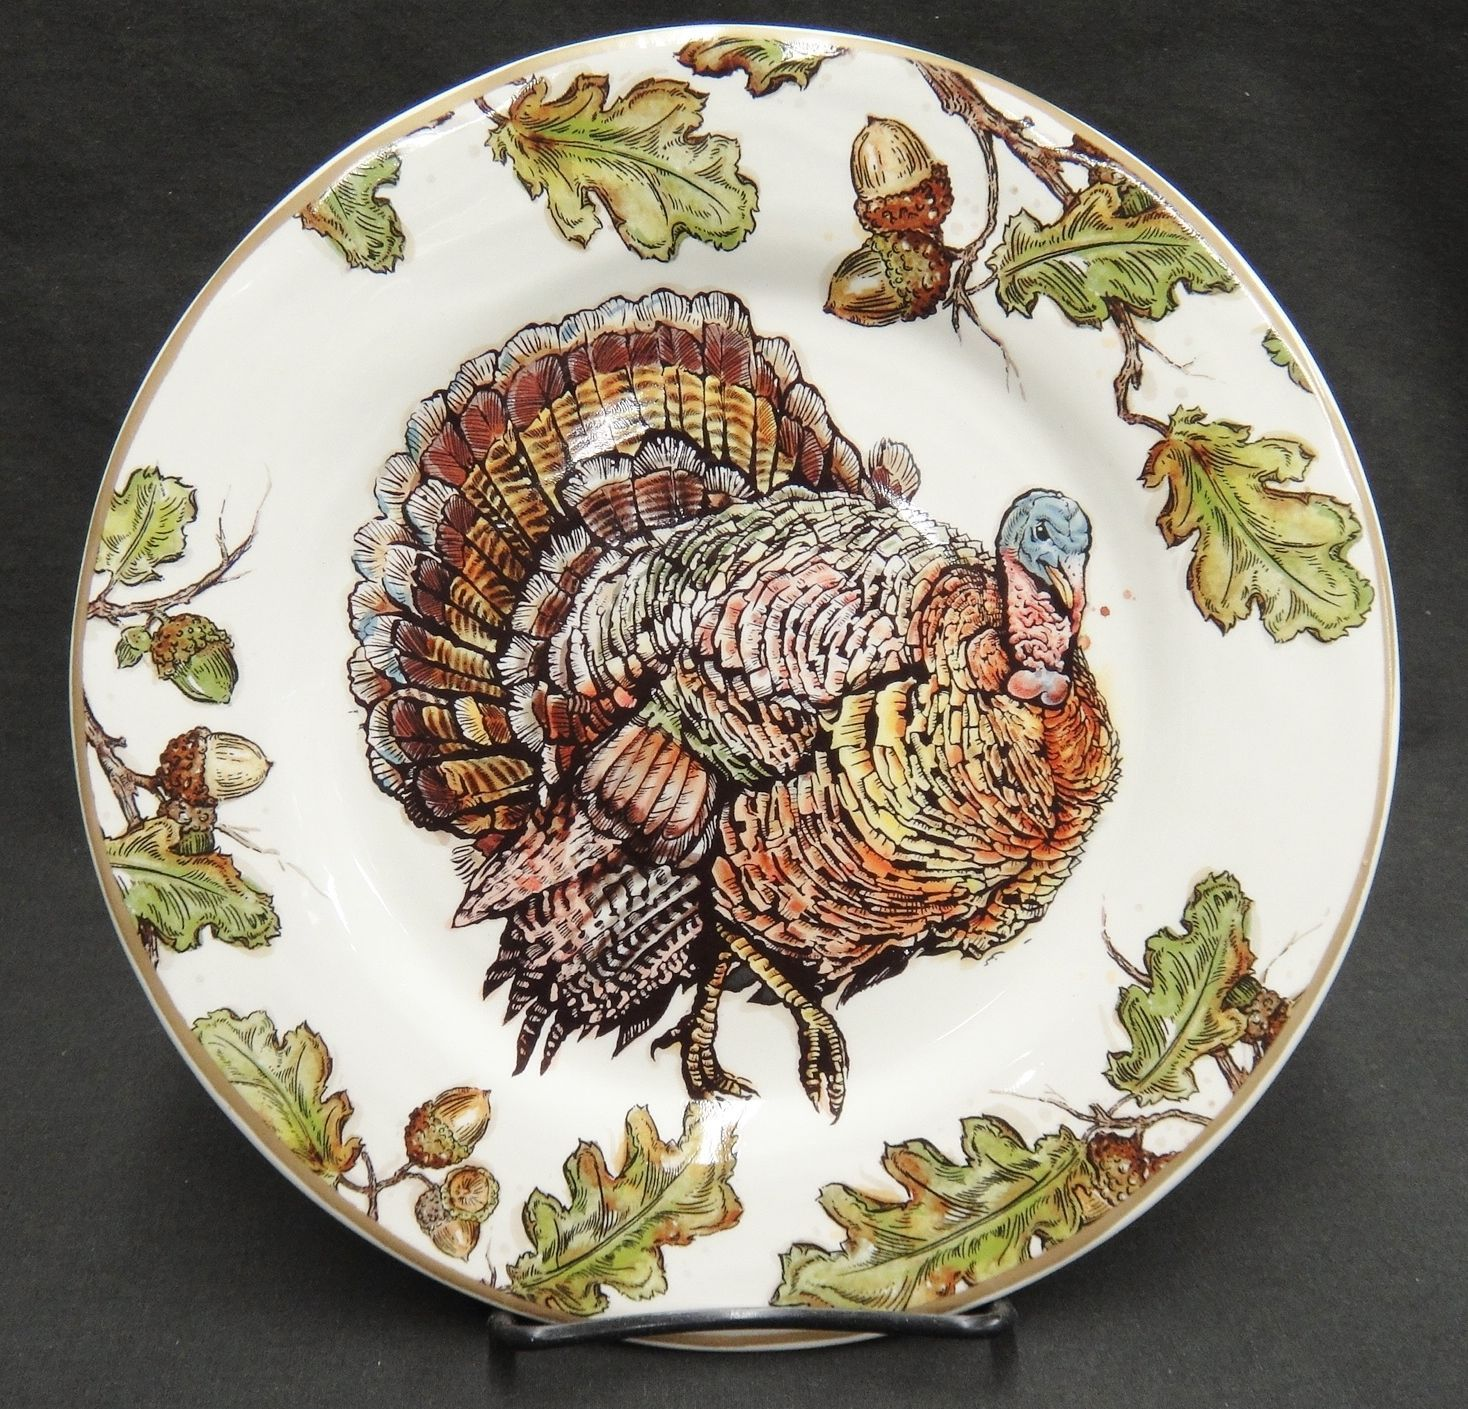 Pier 1 Imports Autumn Oak Turkey Salad Plate Acorns Leaves 8.75\  Very Good HTF : pier 1 imports dinnerware - pezcame.com